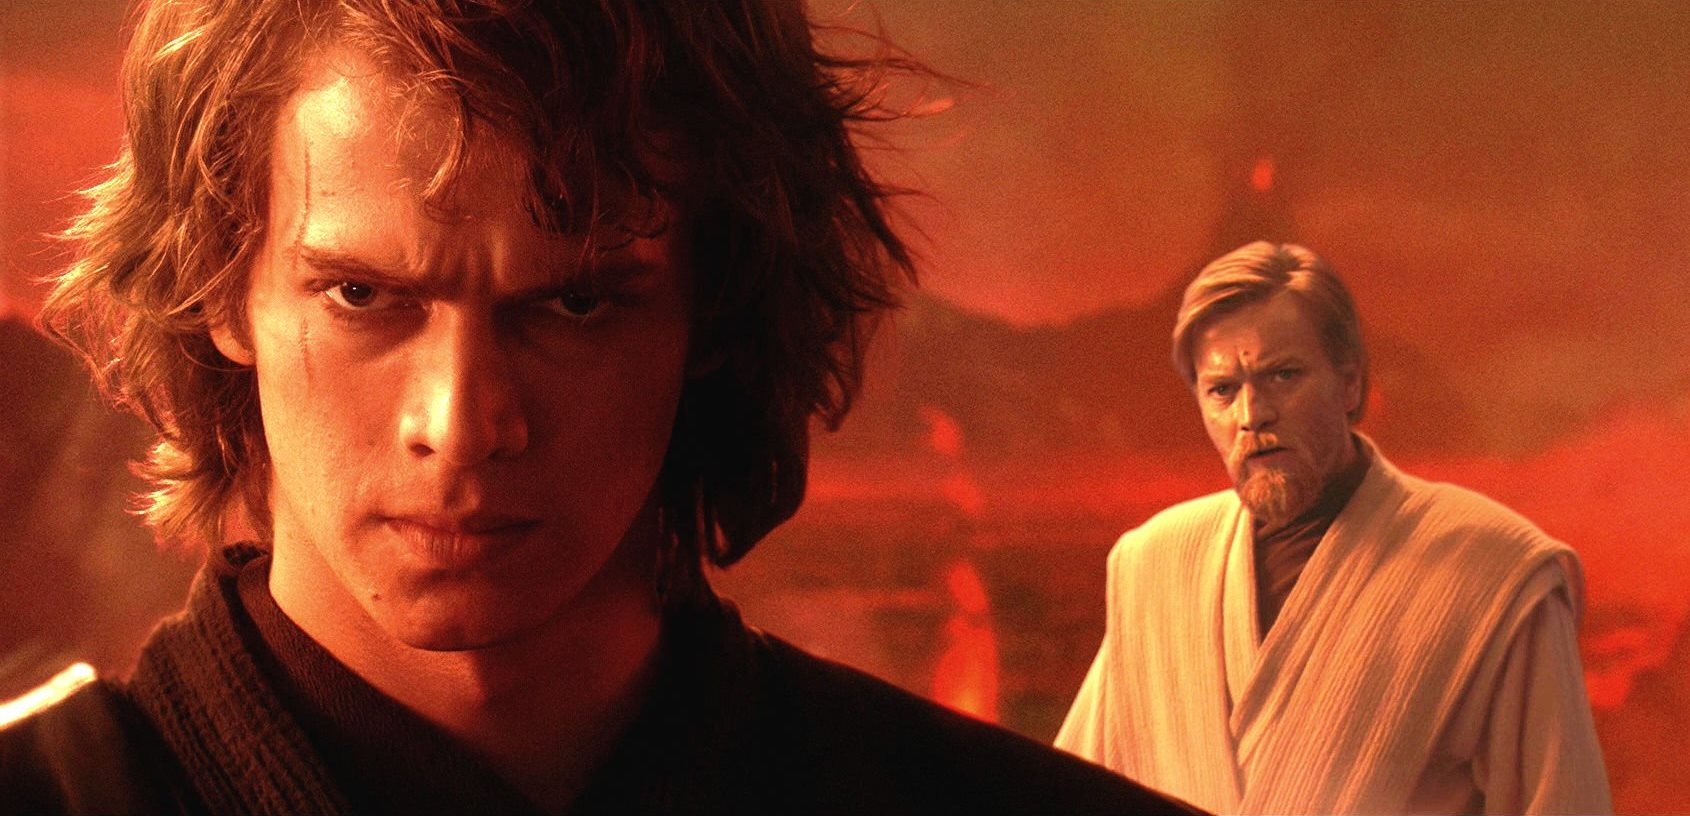 Anakin Skywalker (Hayden Christensen) and Obi-wan Kenobi (Ewan McGregor) in Star Wars Episode III Revenge of the Sith (2005)